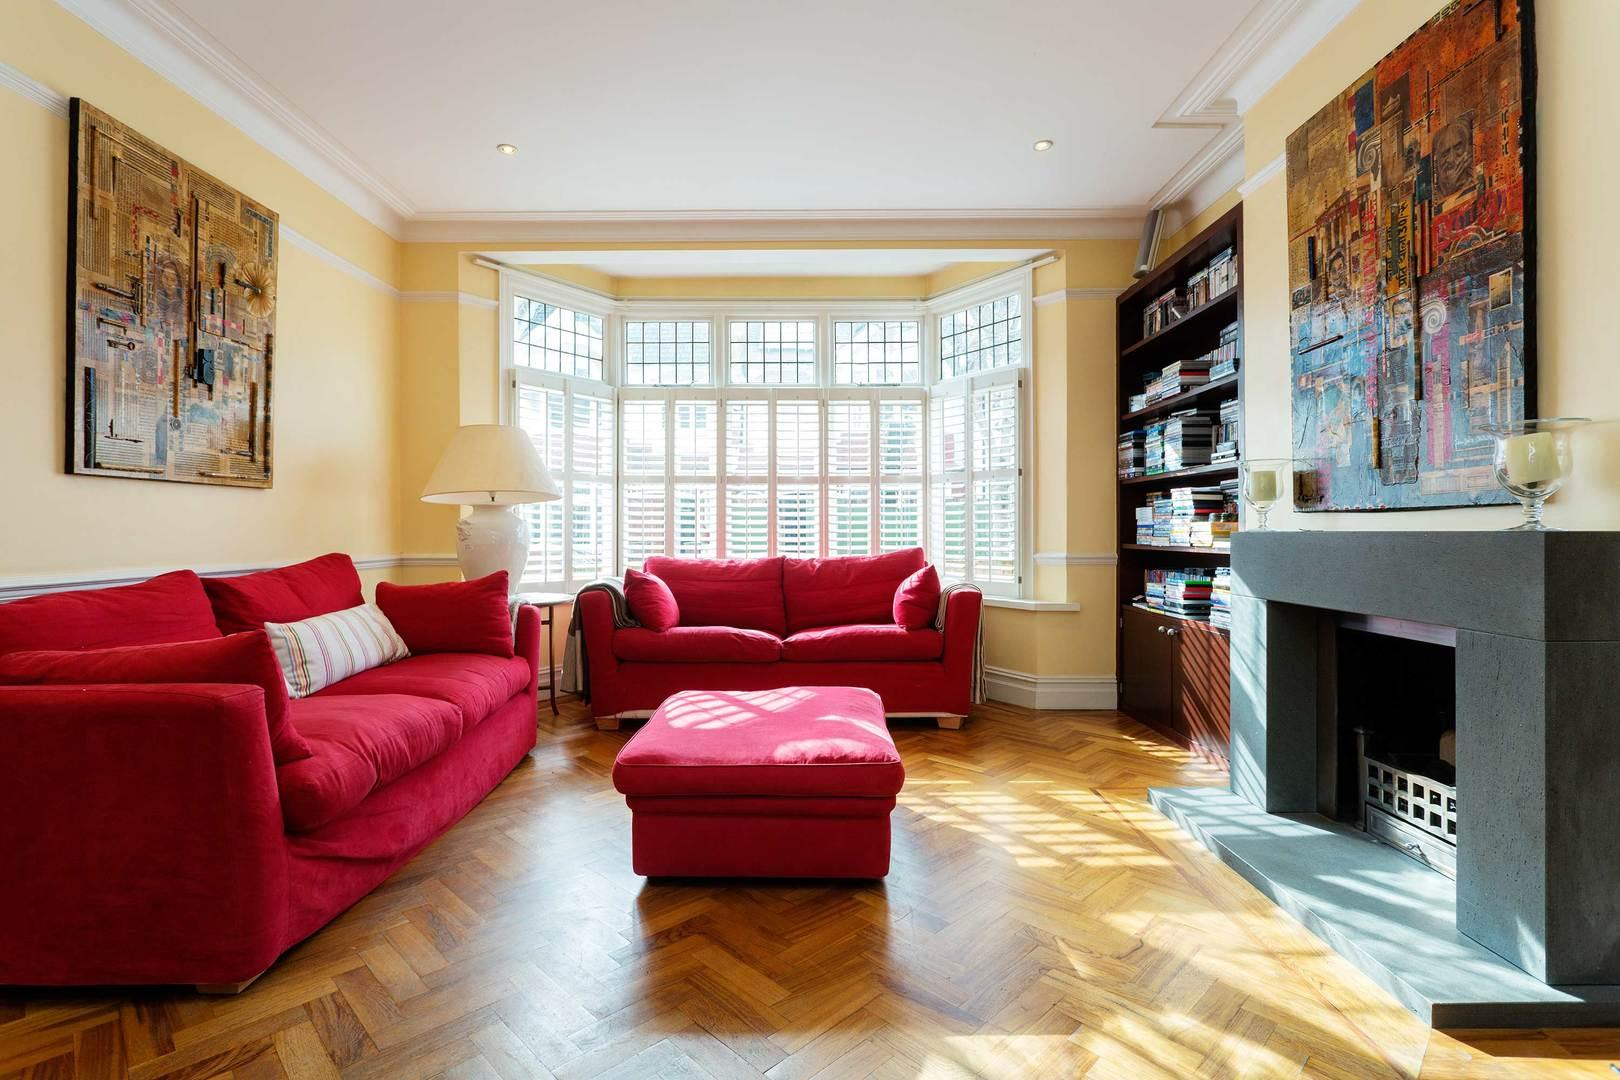 Property Image 1 - Spacious 6 bedroom House with Large Playroom in Clapham